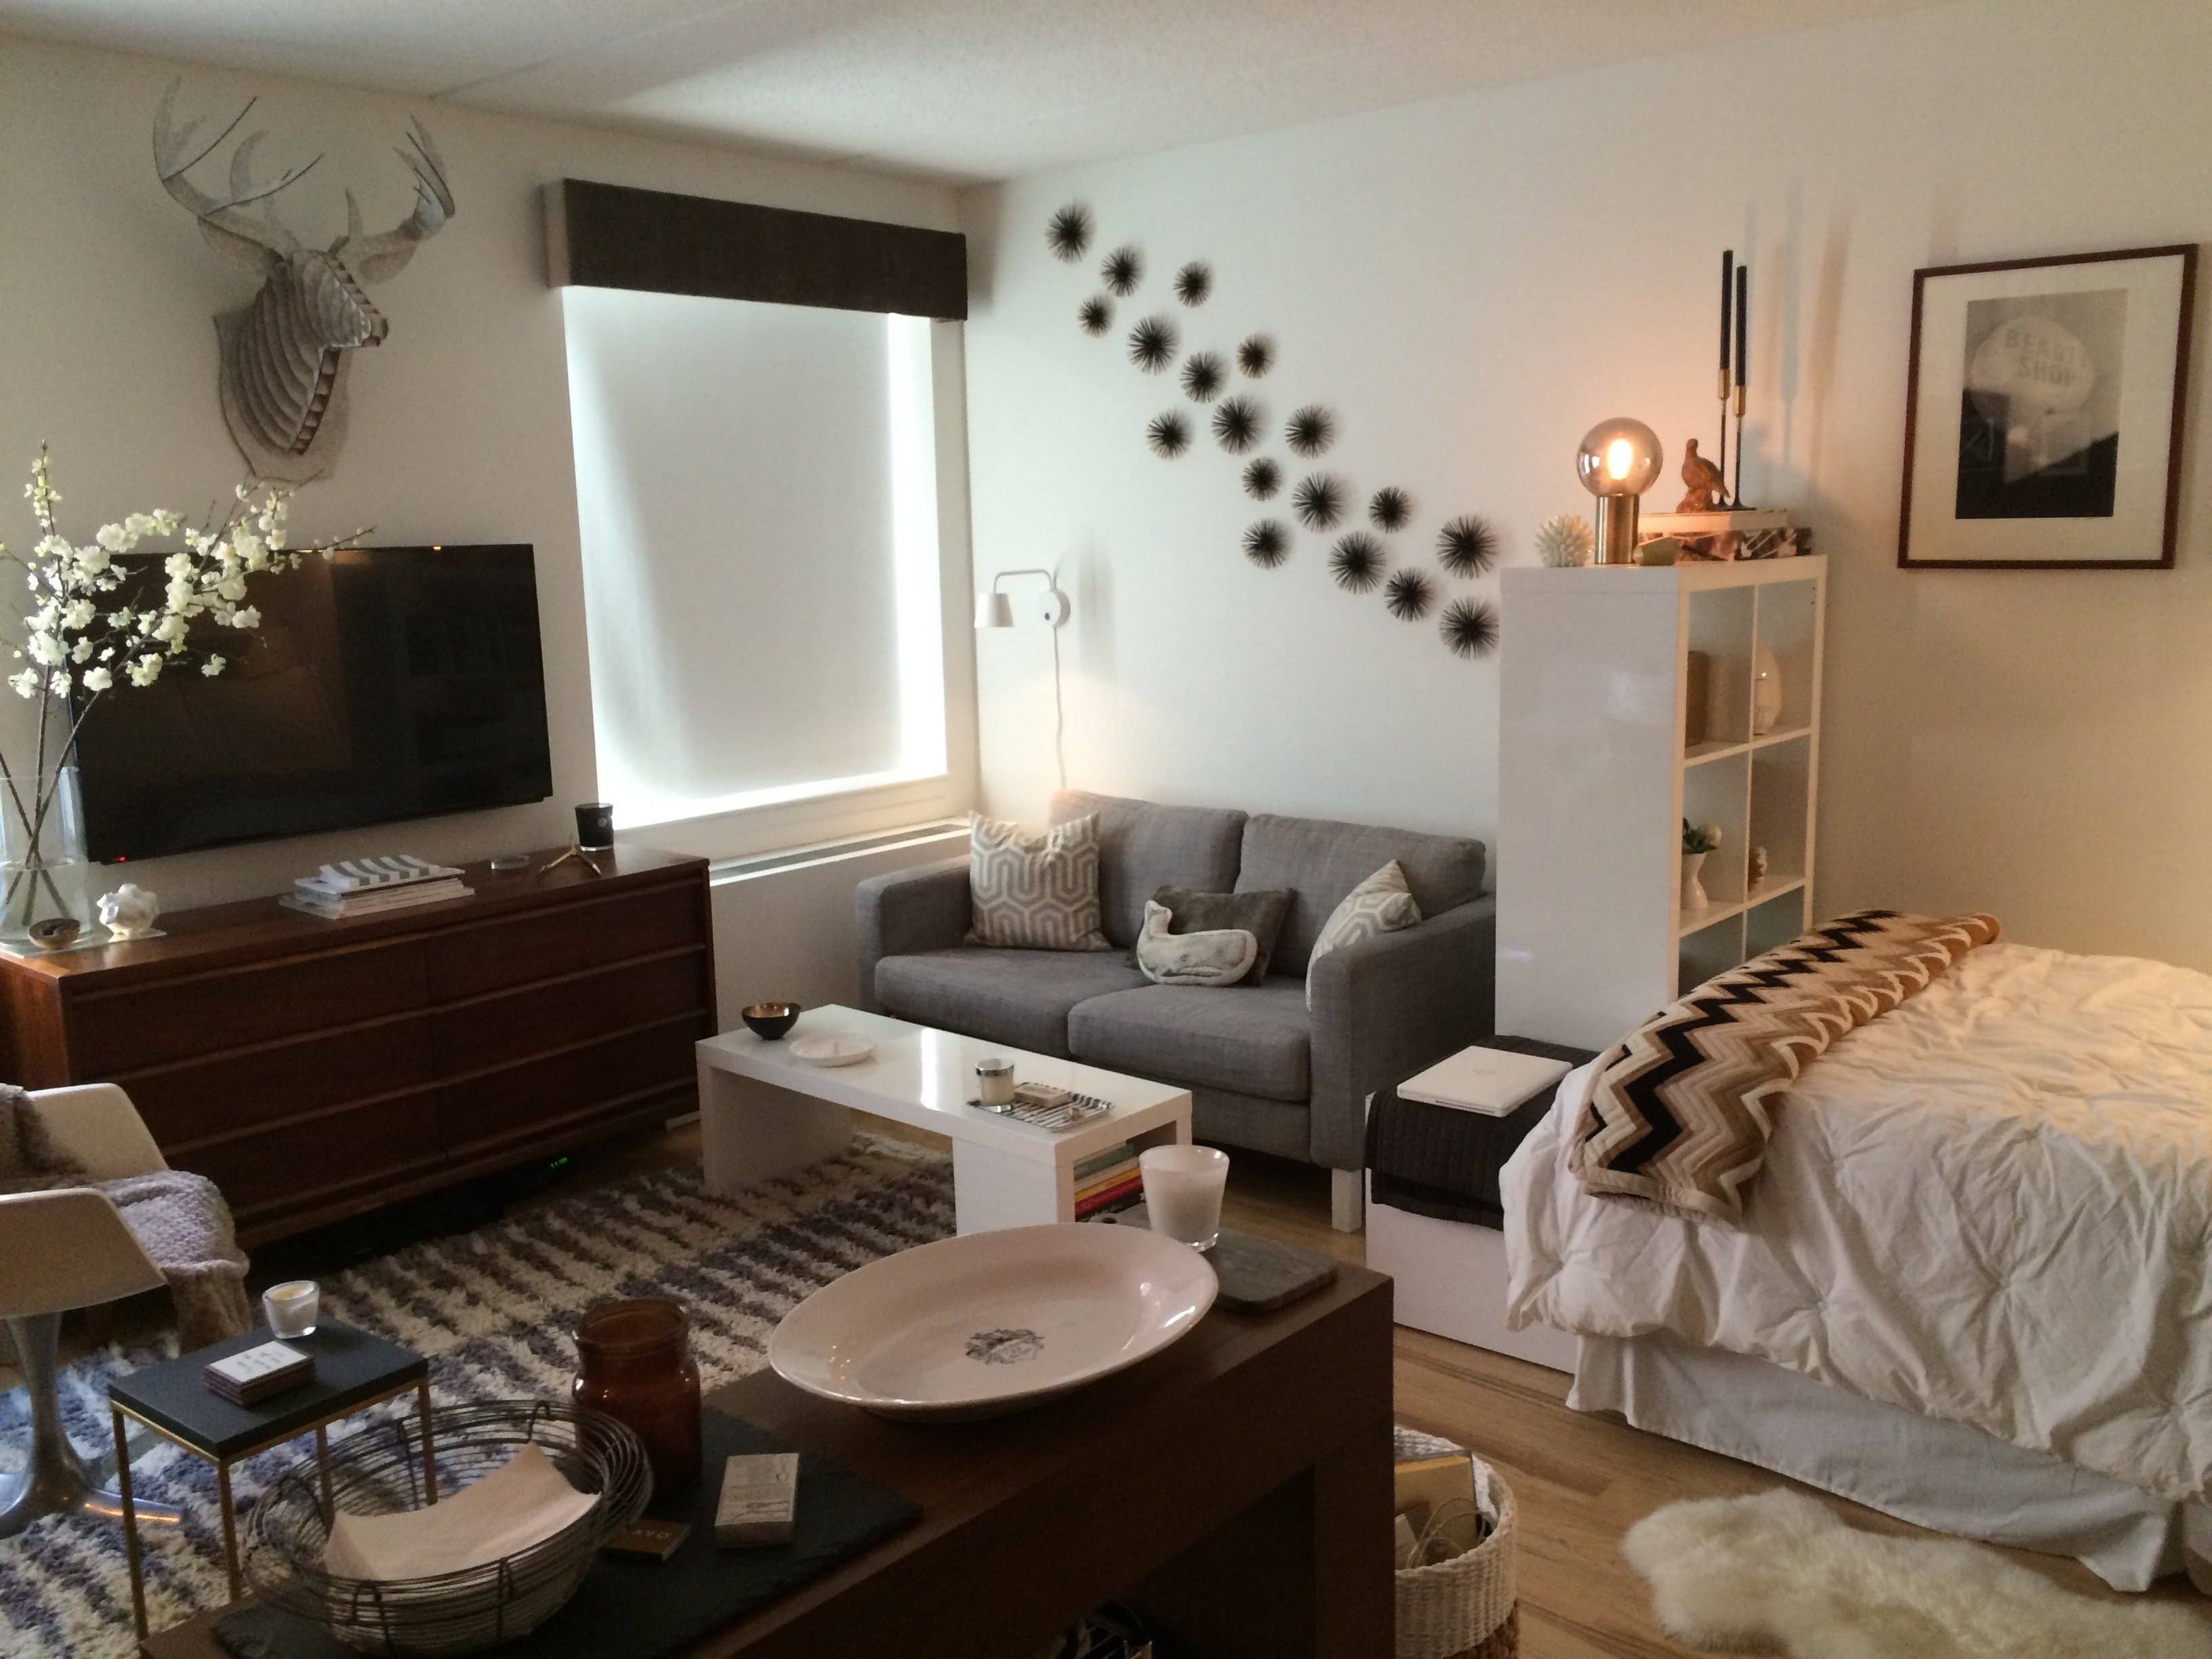 5 studio apartment layouts that work | studio apartment layout